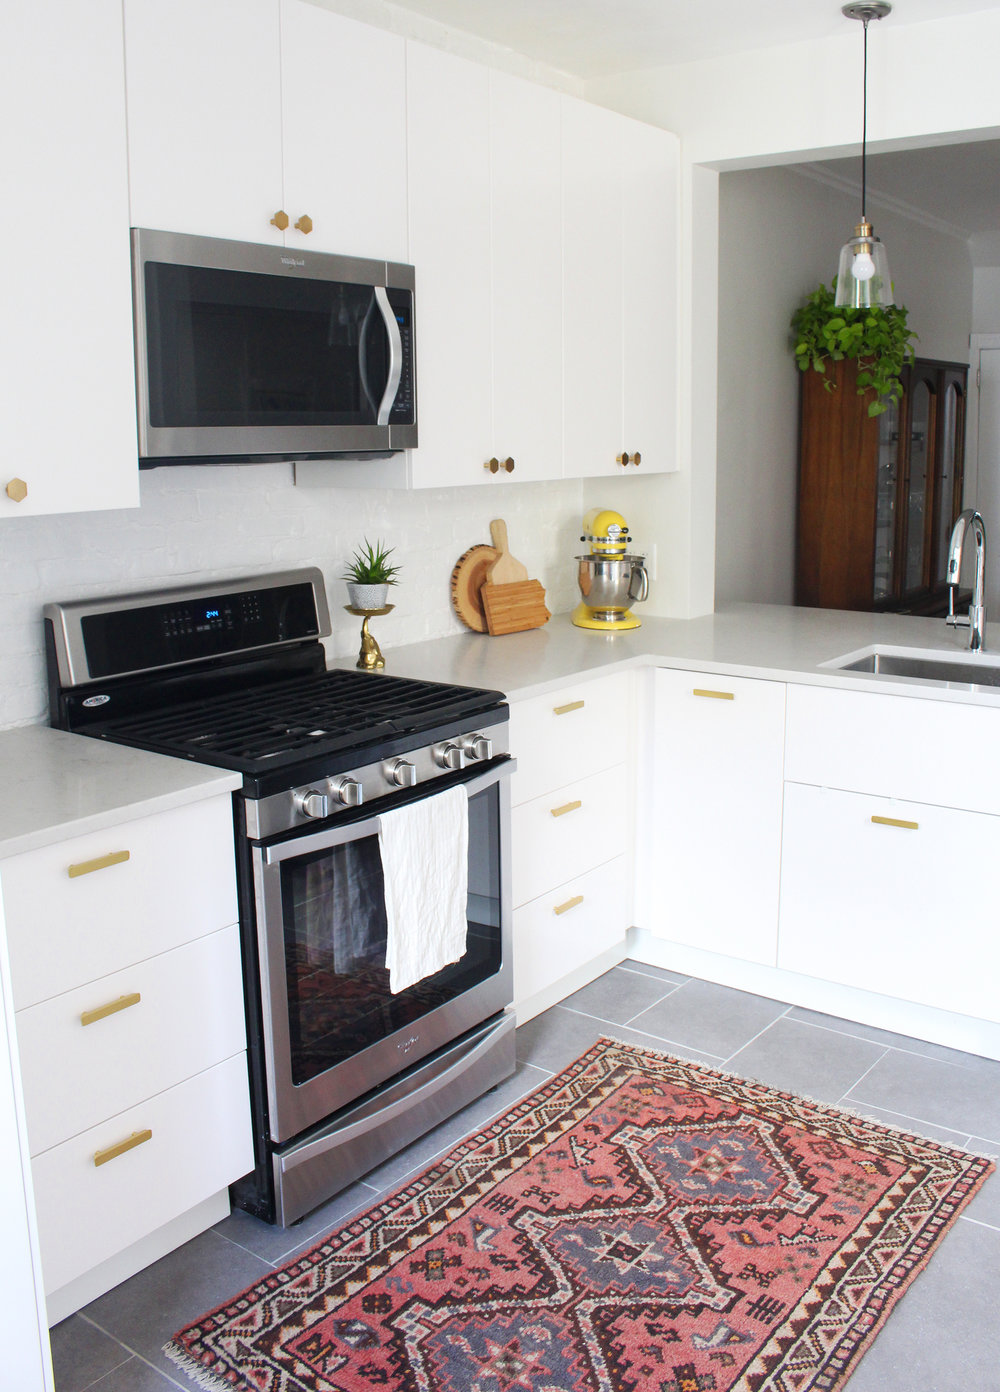 Small, modern IKEA kitchen (Veddinge)